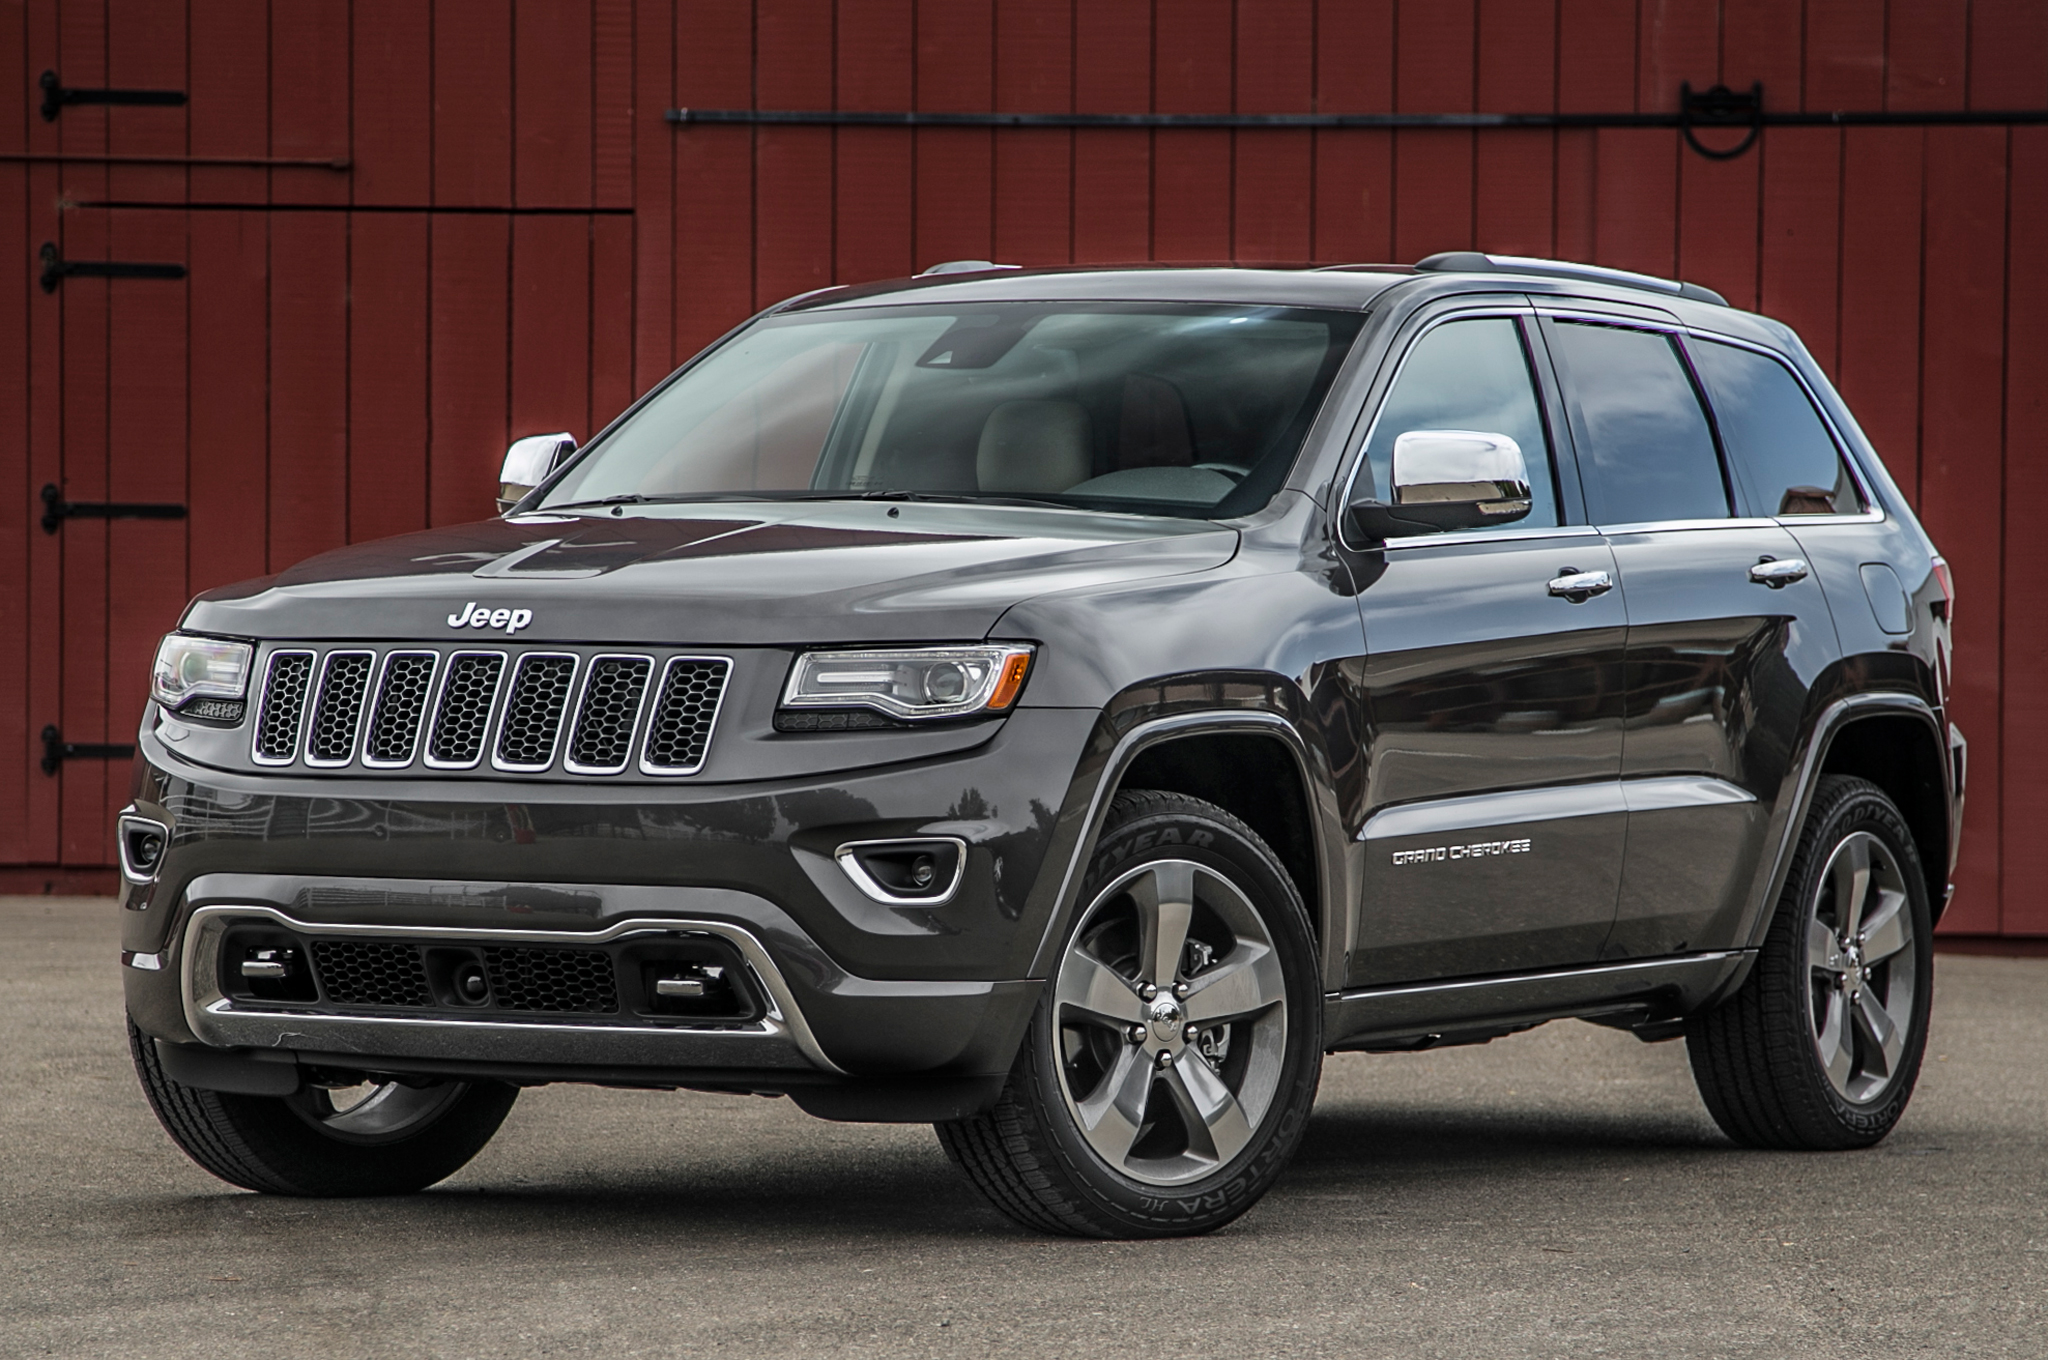 jeep grand cherokee pics #1